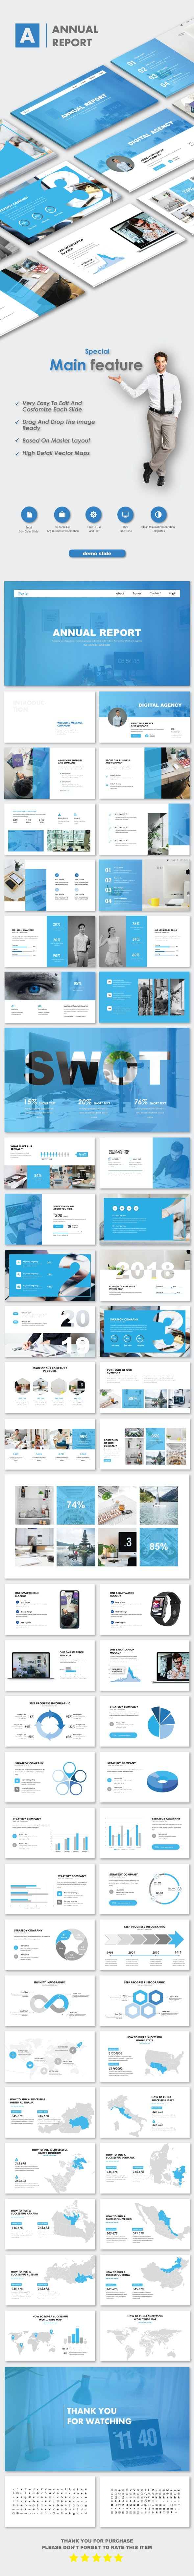 Annual Report 2019 Business Google Slide Templates - Google Slides Presentation Templates